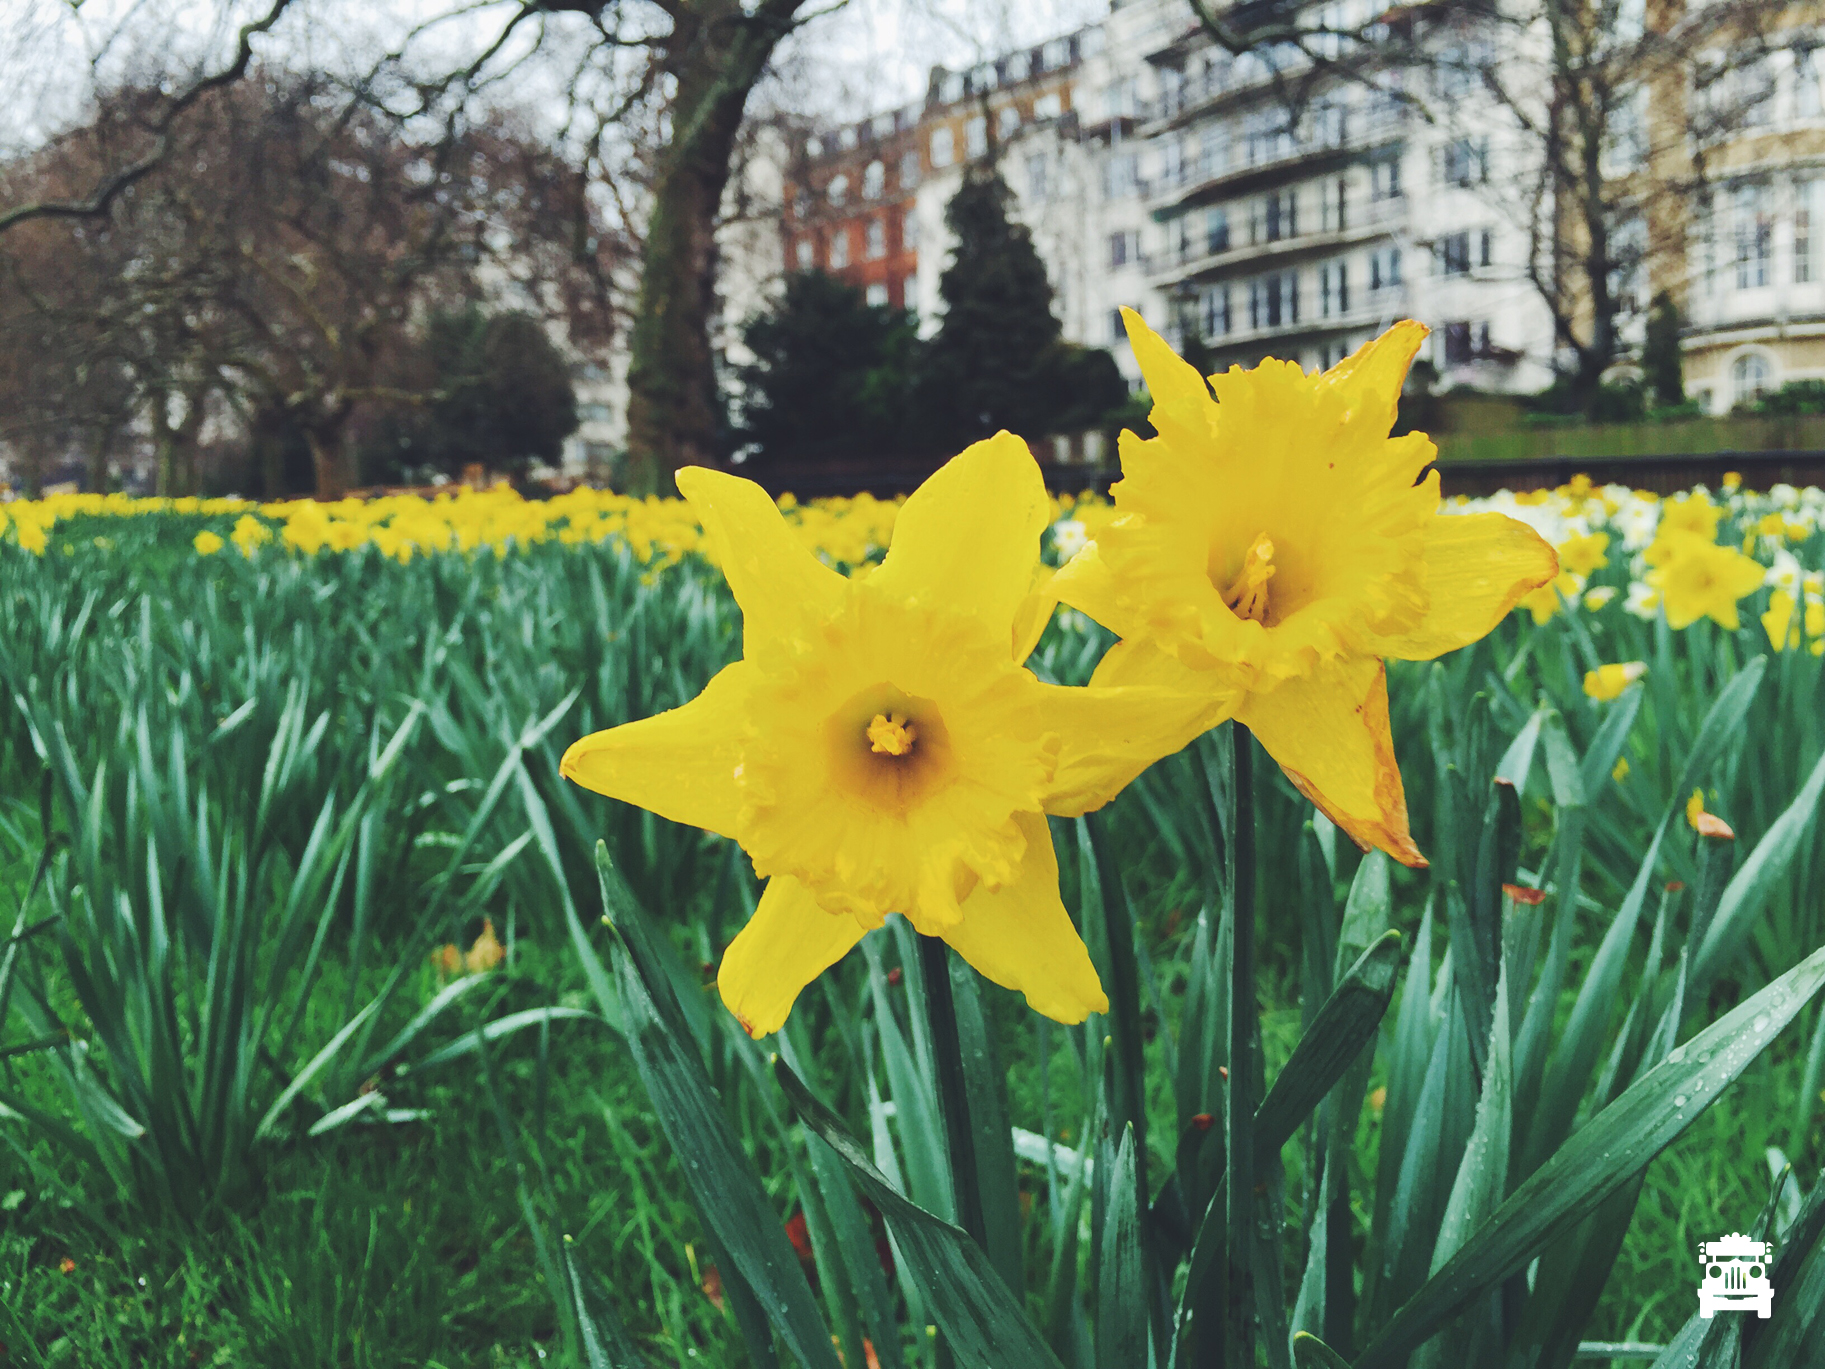 Lovely daffodils at the park